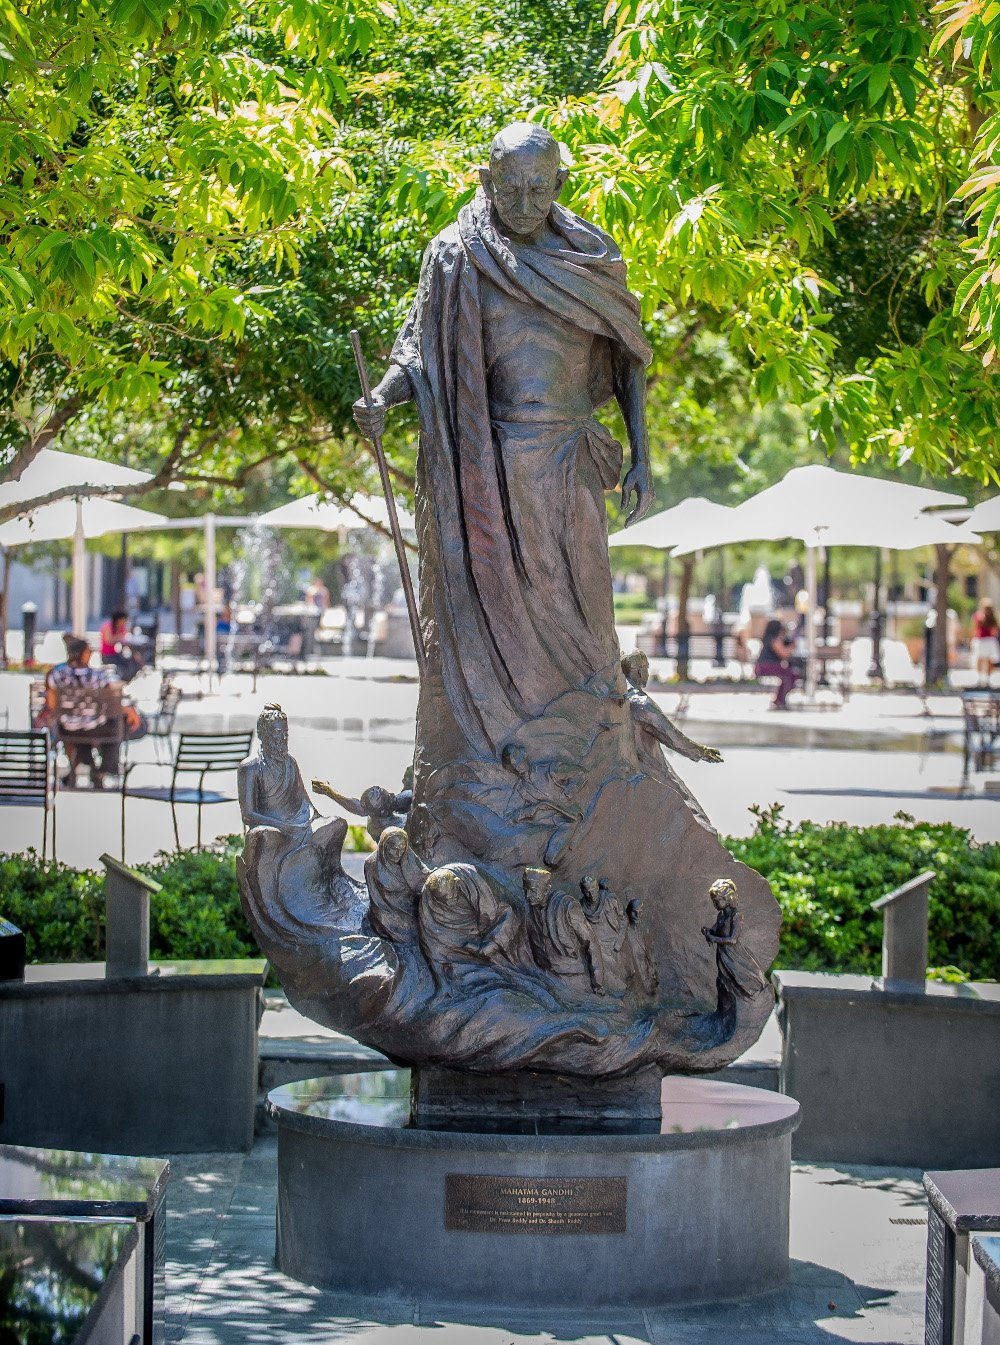 Downtown Riverside is a walking museum filled with statues of great leaders